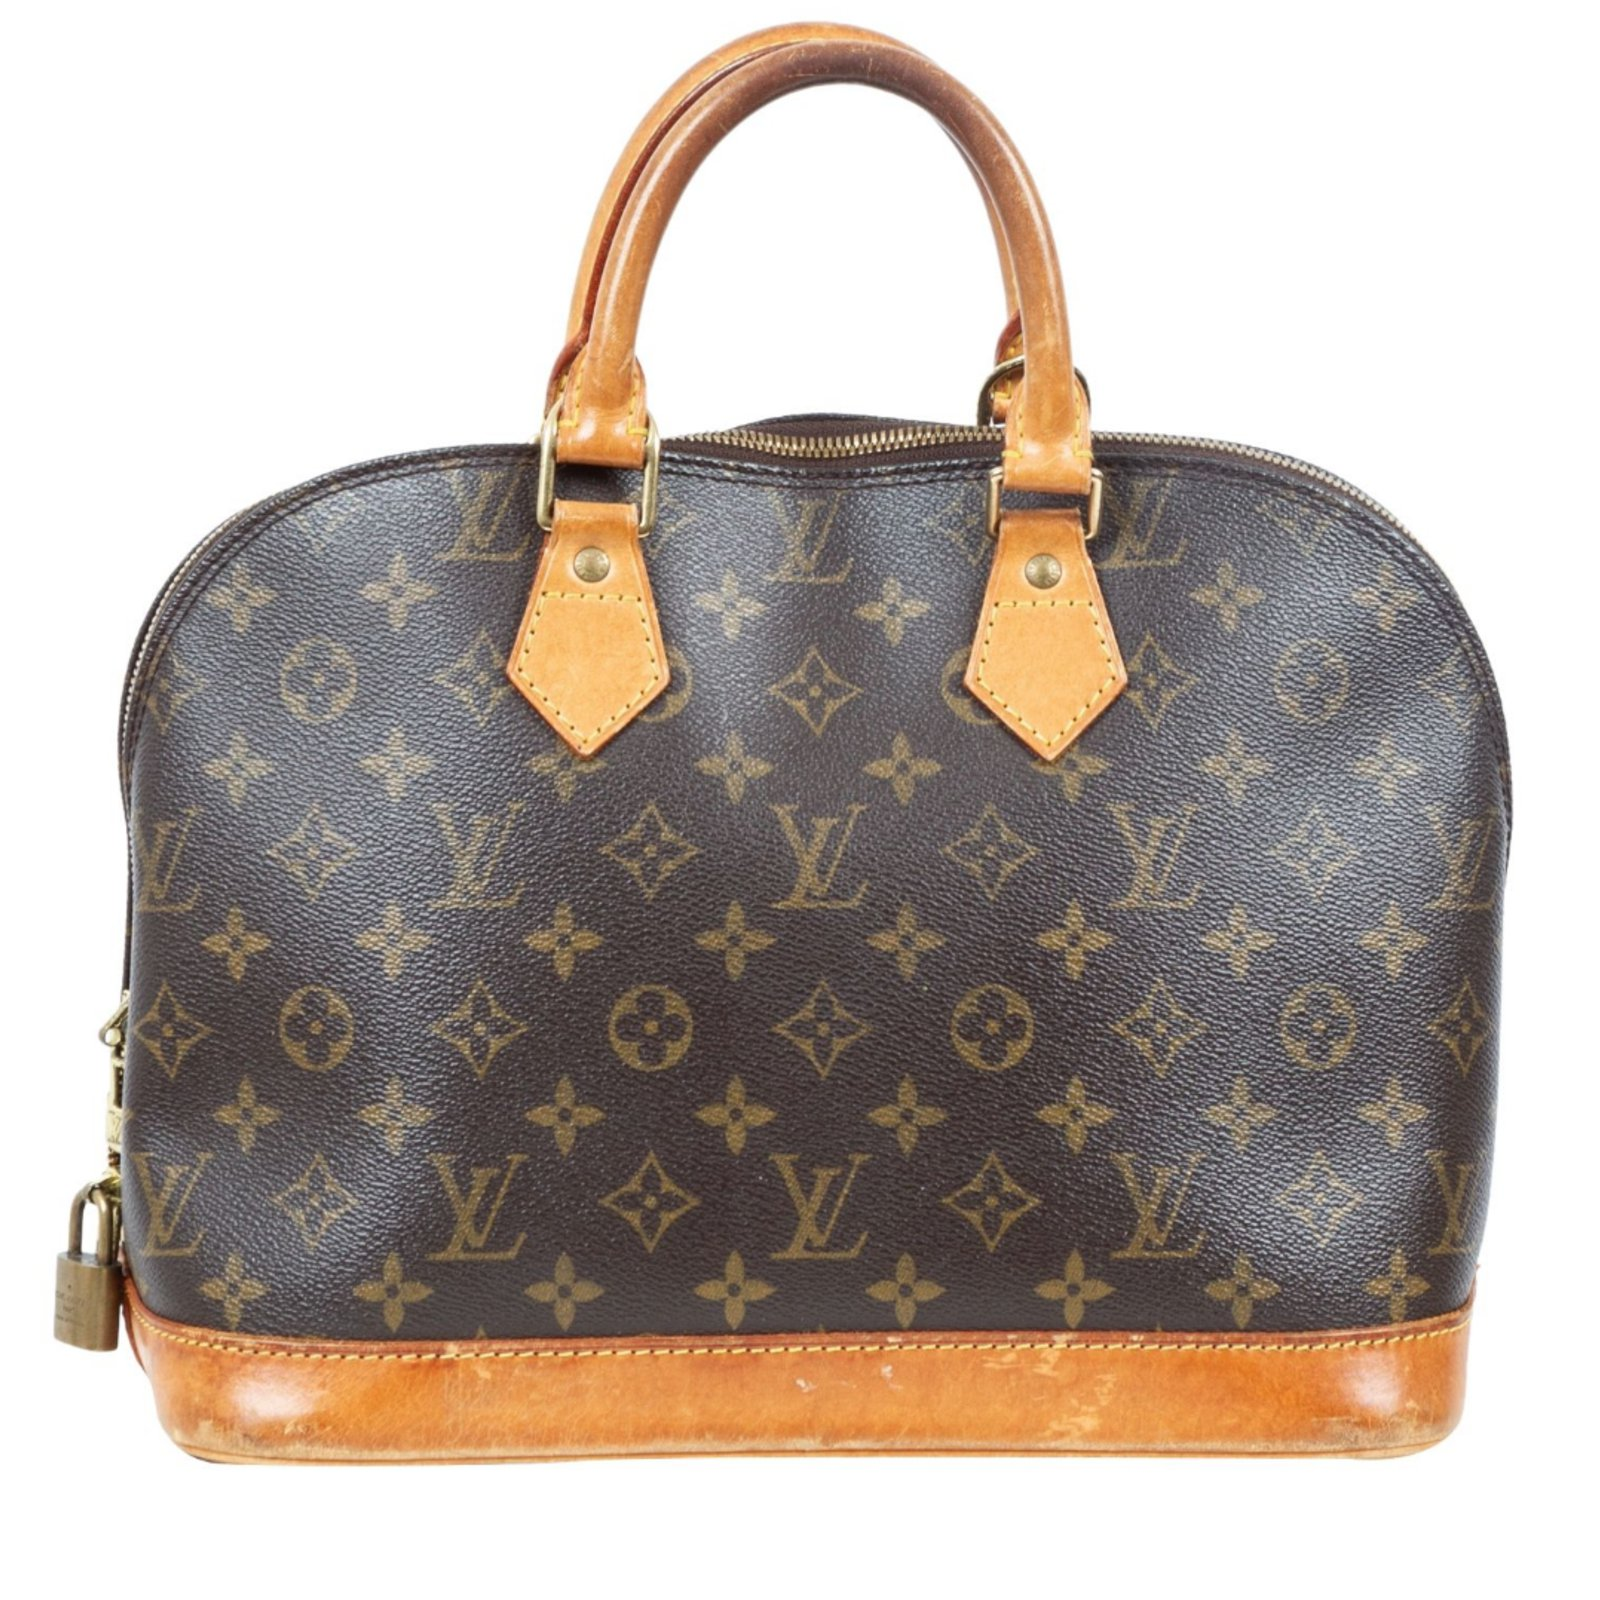 Louis Vuitton Alma - Vintage Handbags Leather f409f55645d6a